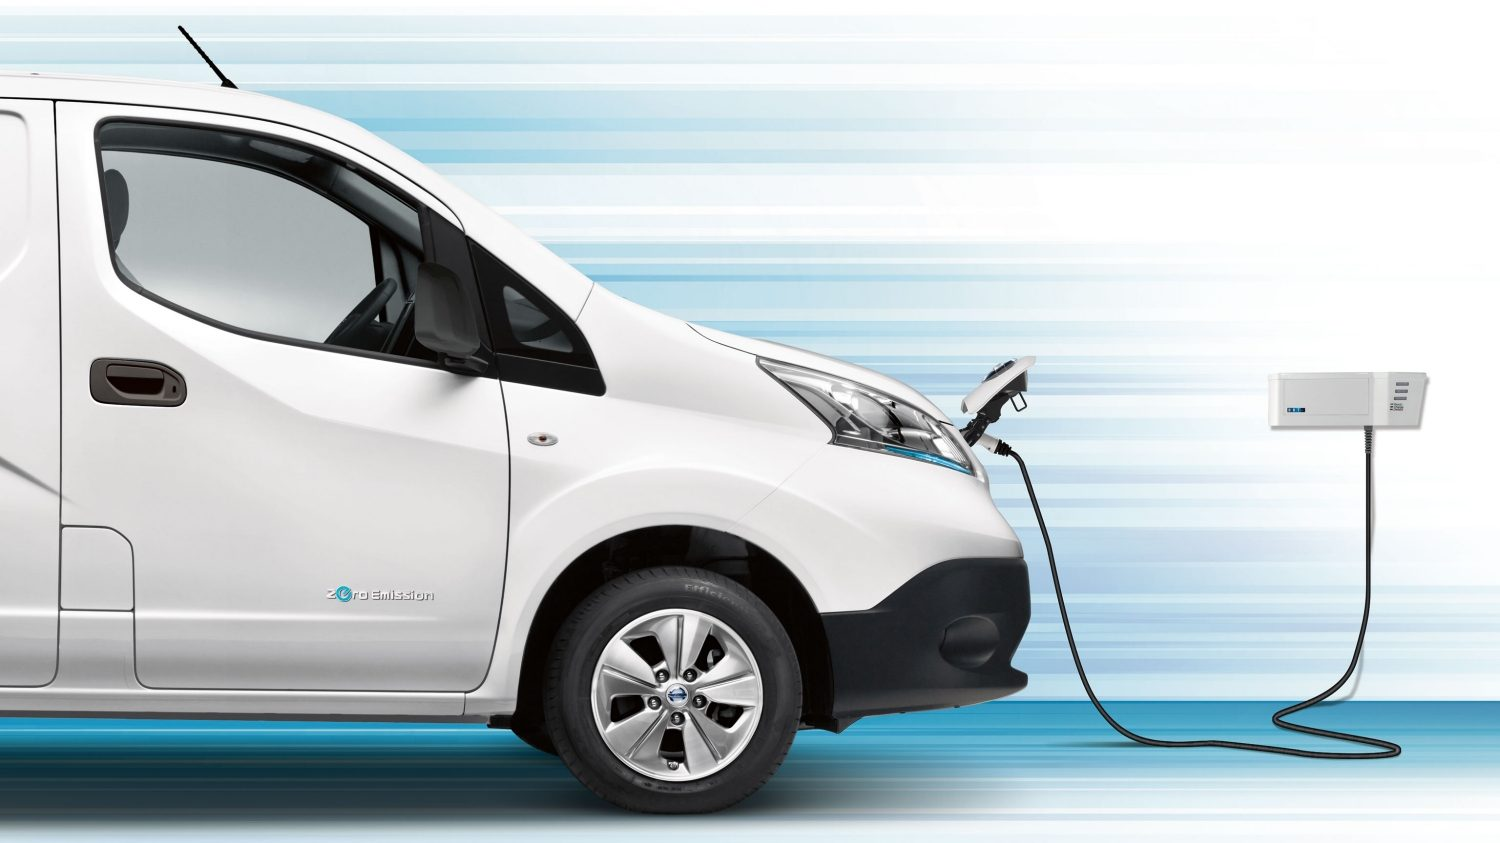 Nissan e-NV200 - Profile of the car plugged in